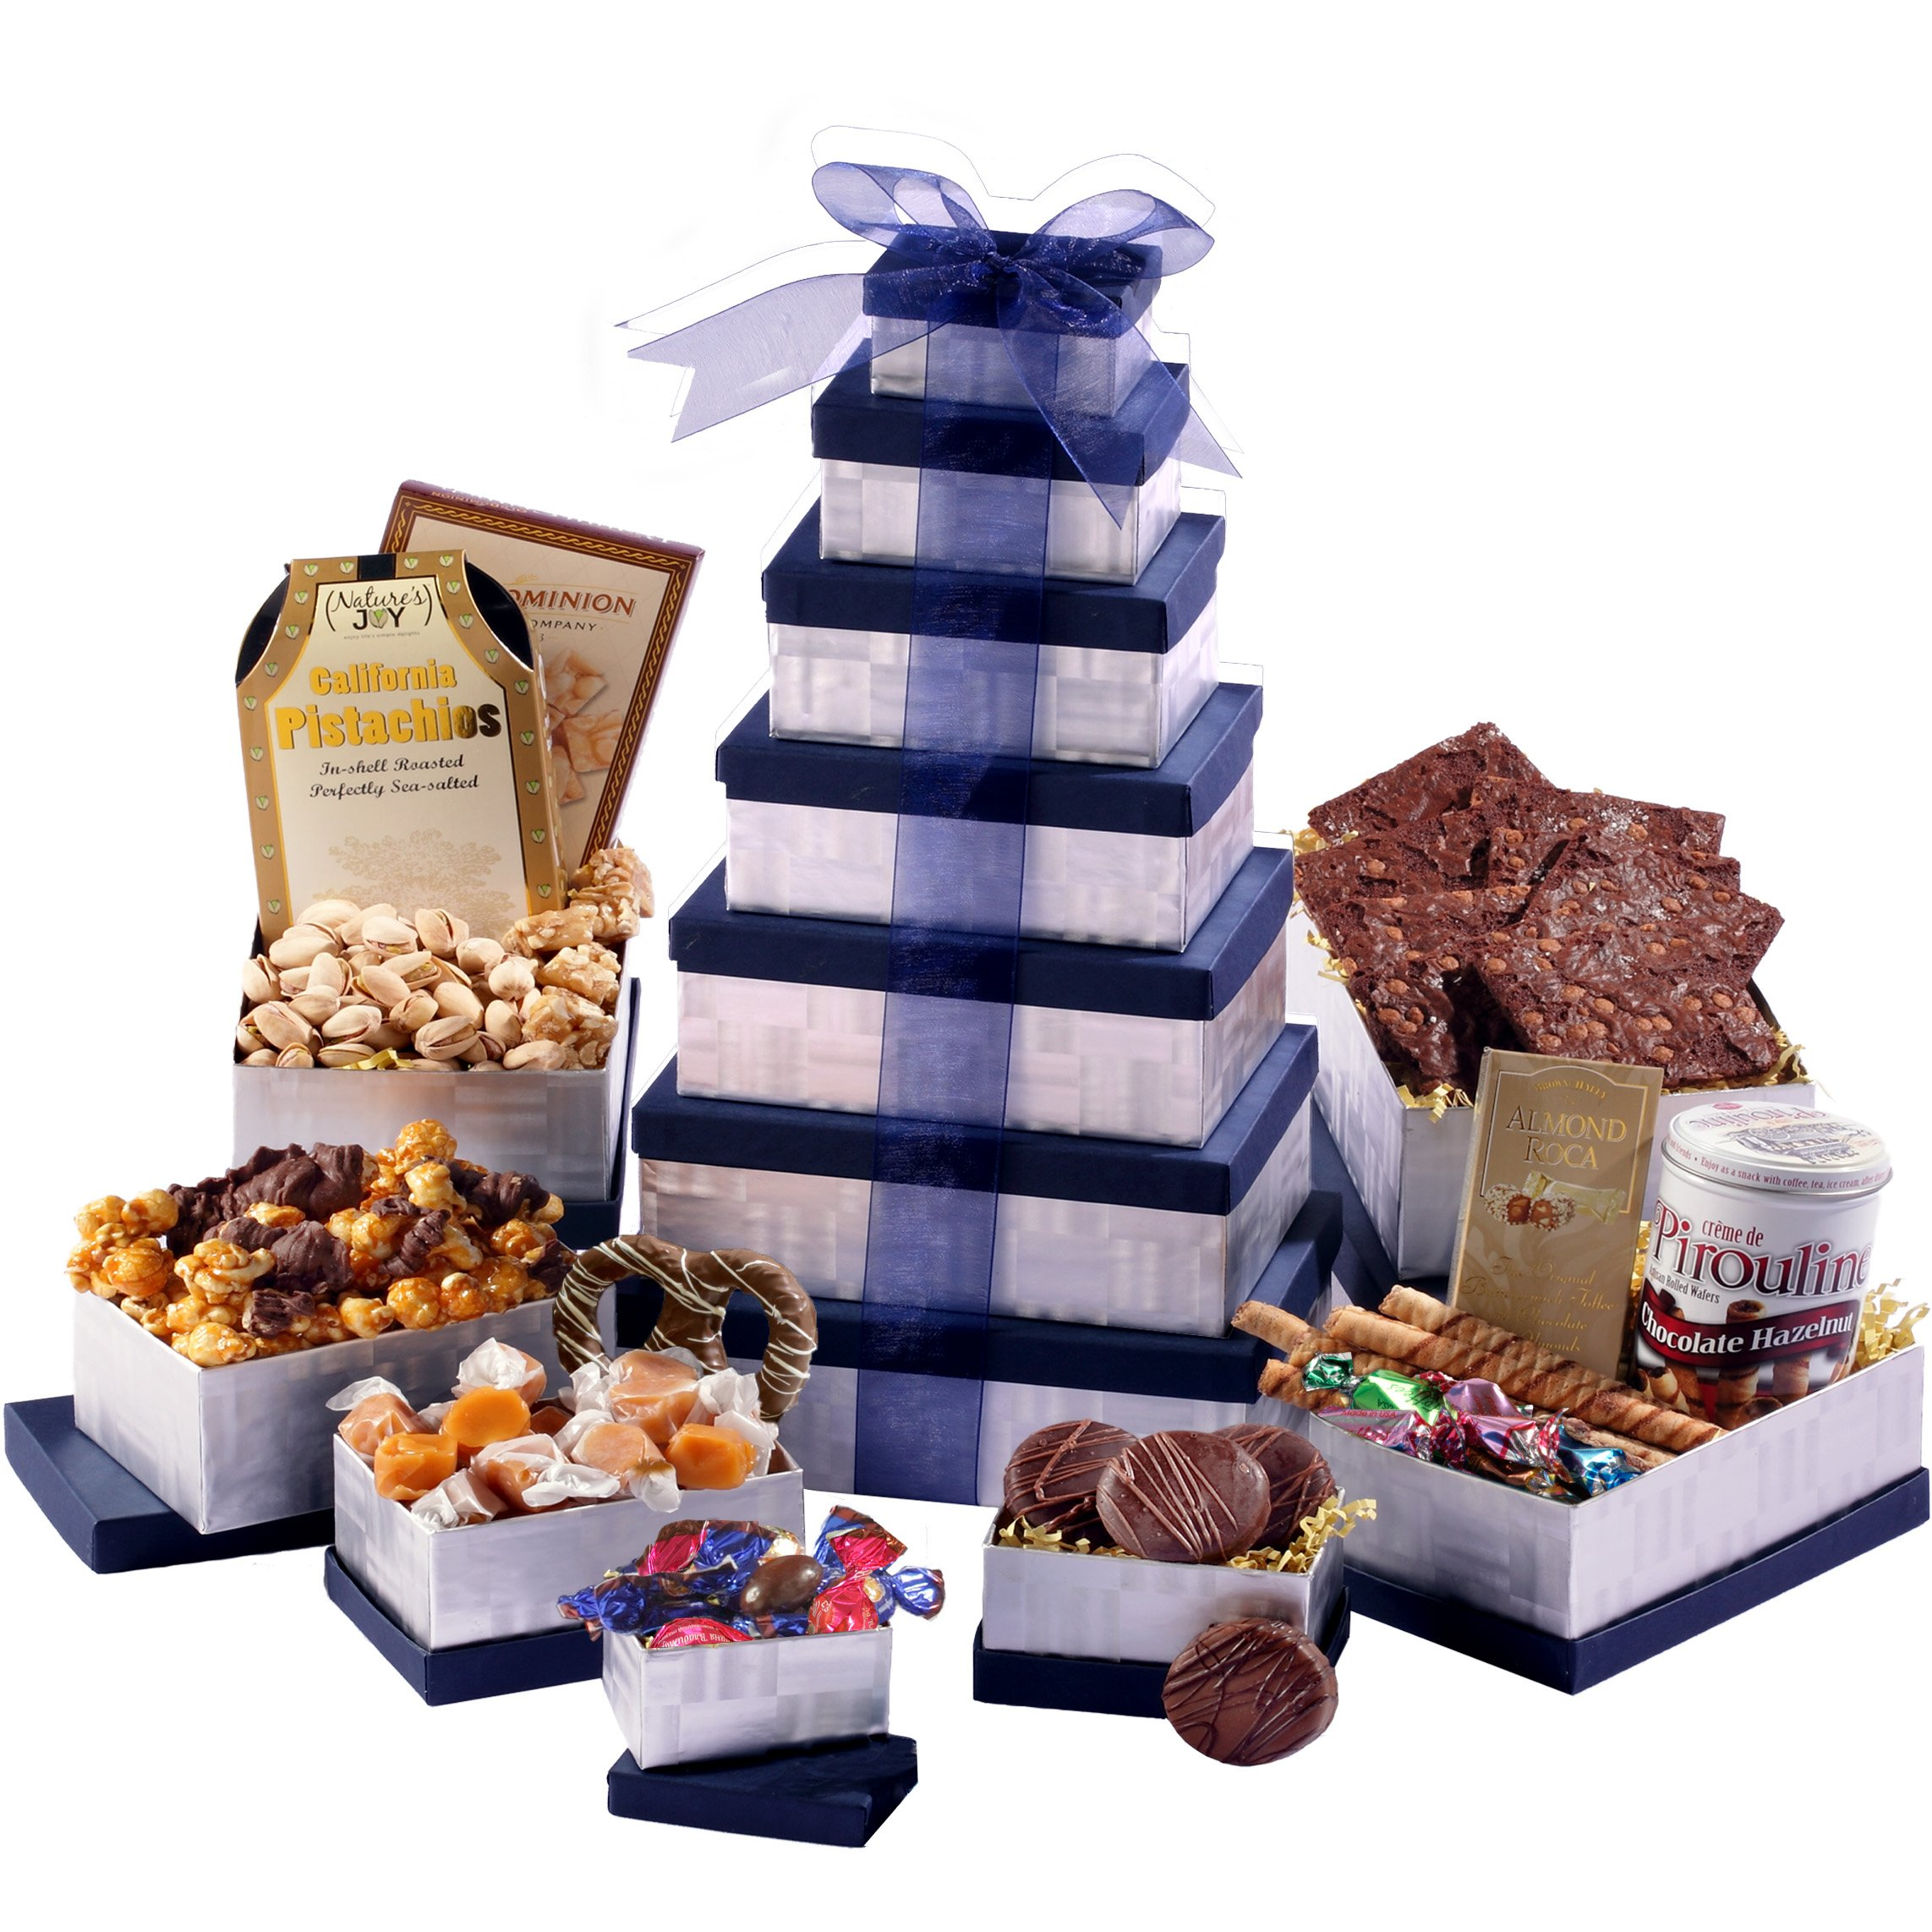 Broadway Basketeers Supreme Birthday Celebration Gift Tower by Broadway Basketeers (Image #1)